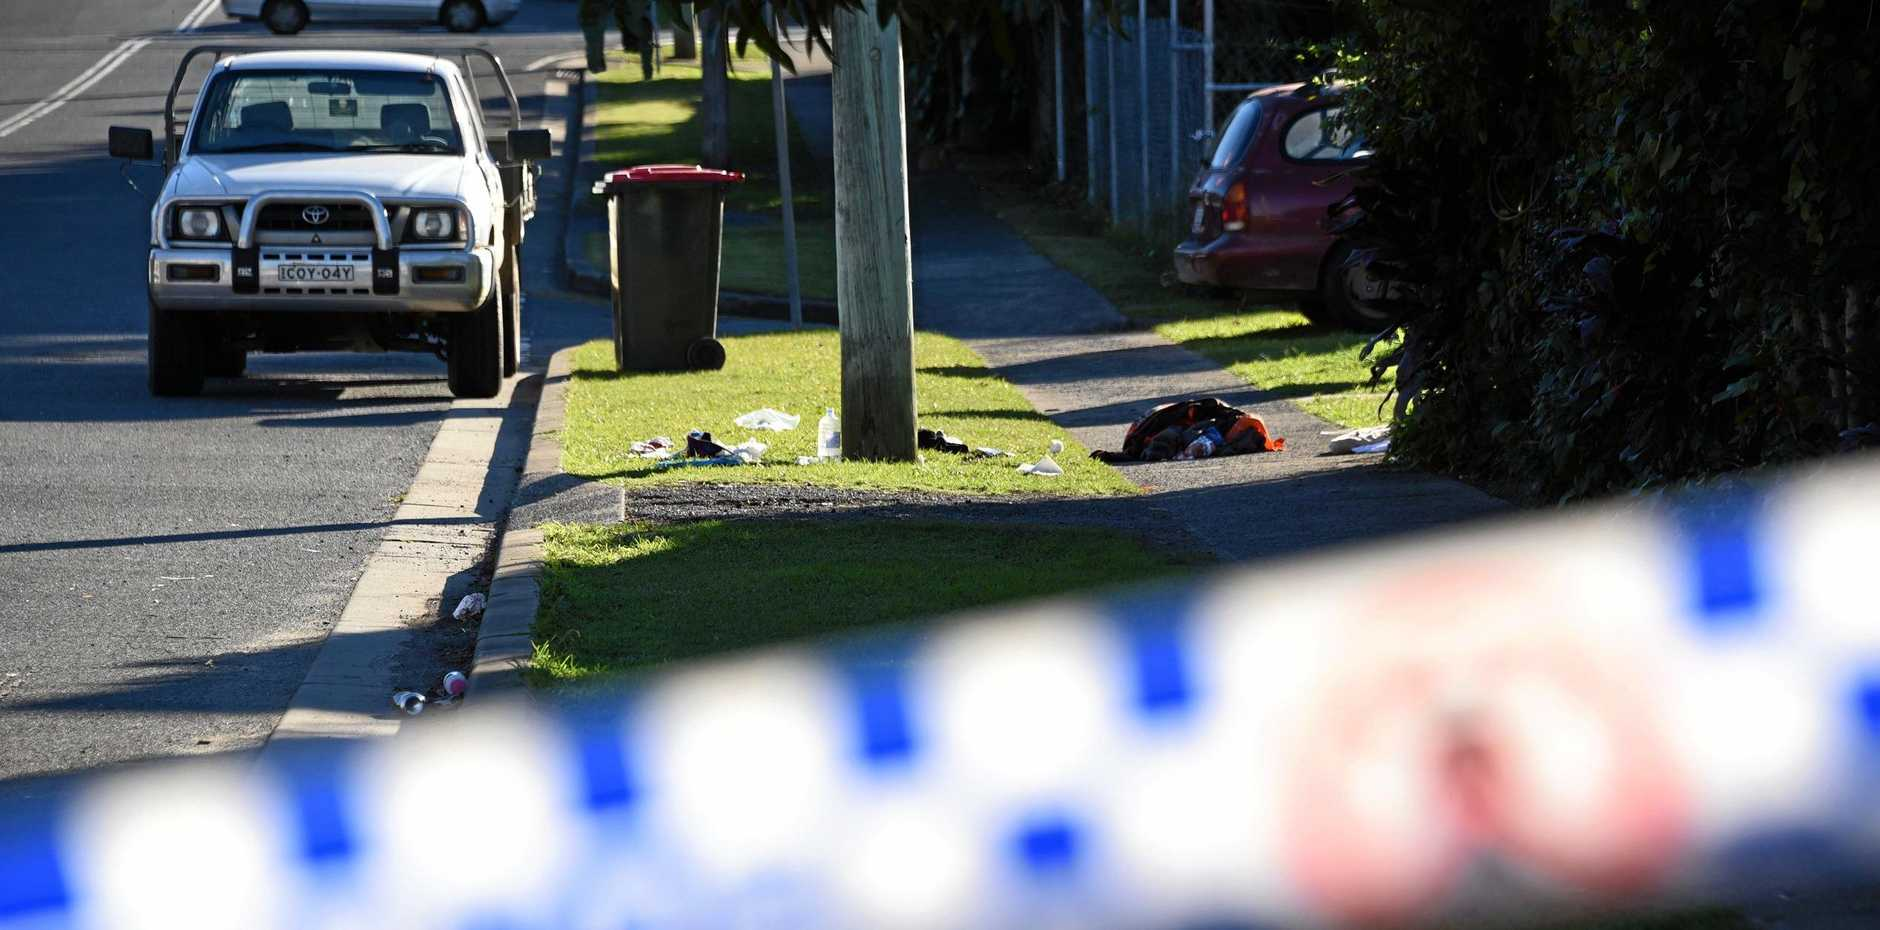 Scene of a fight and stabbing in a park and street in Murwillumbah.